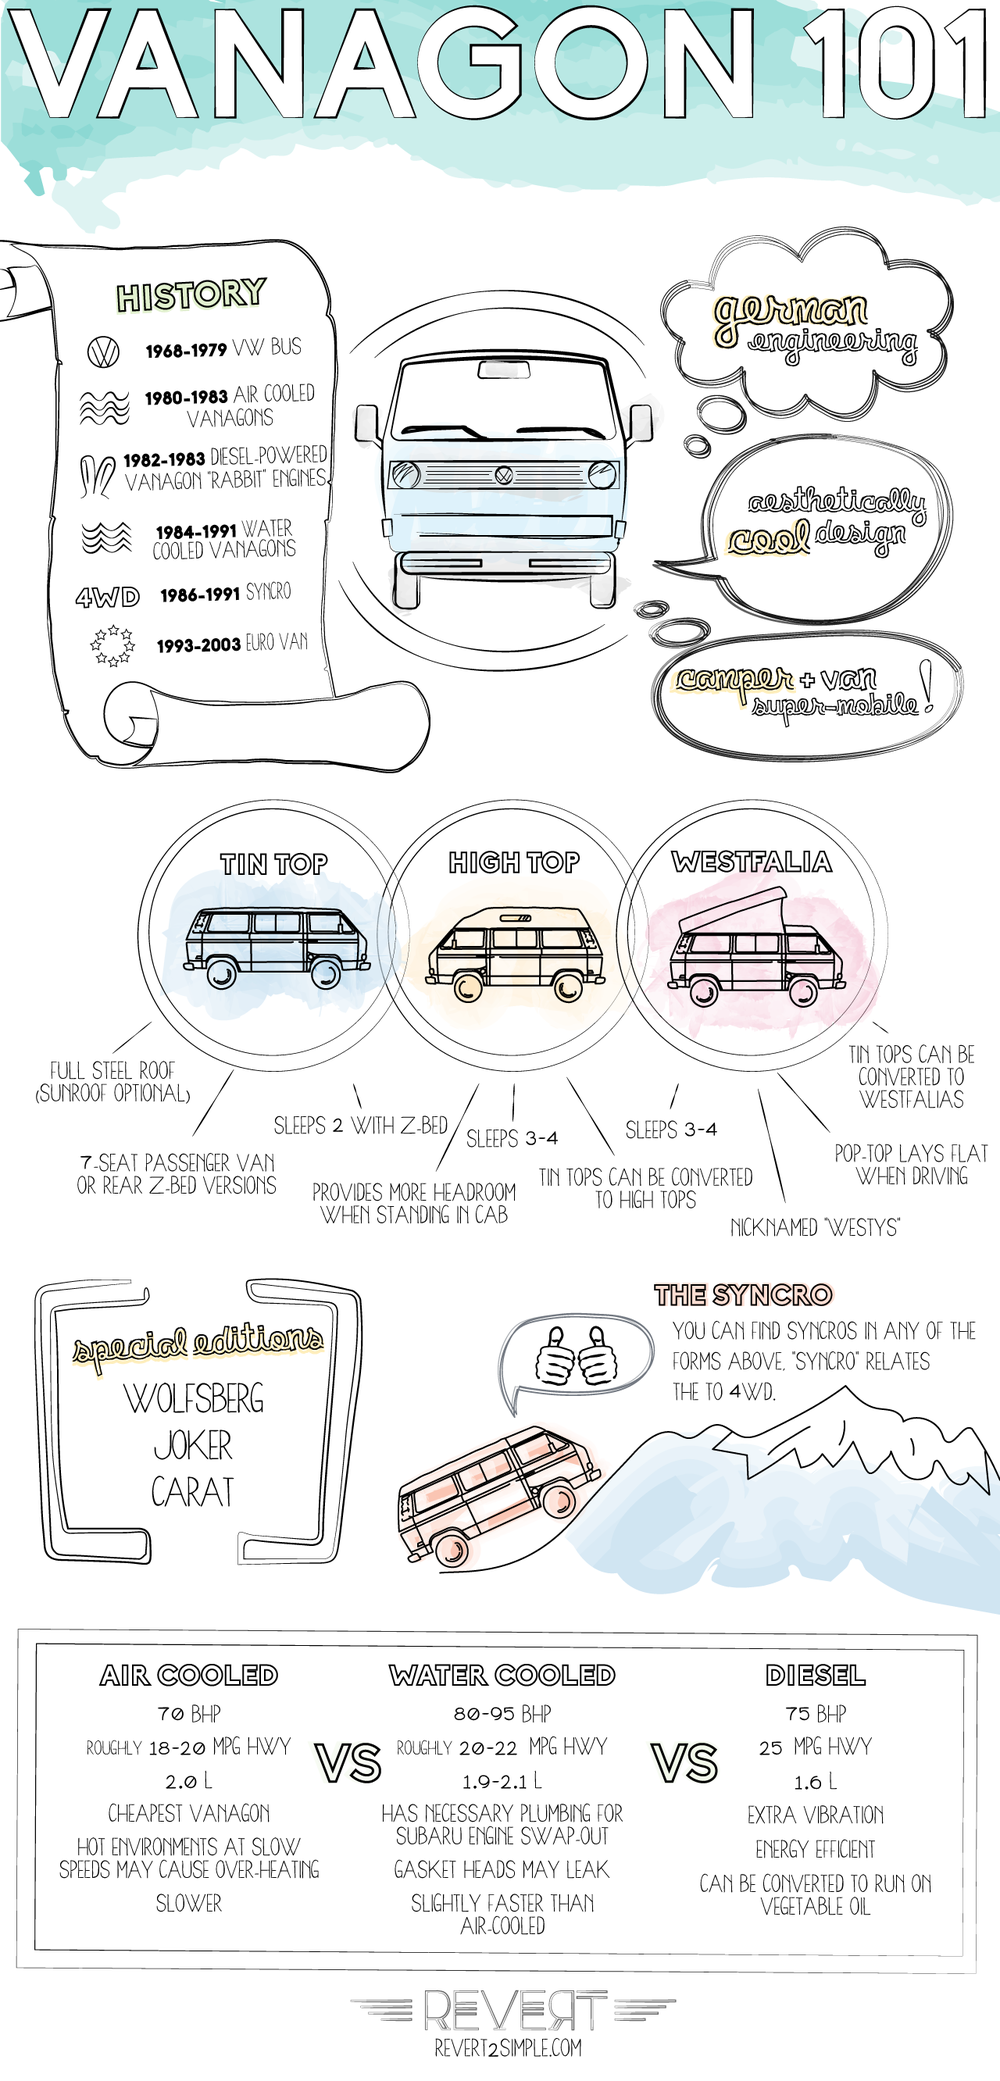 small resolution of vanagon 101 infographic westfalia westy high top tin top syncro